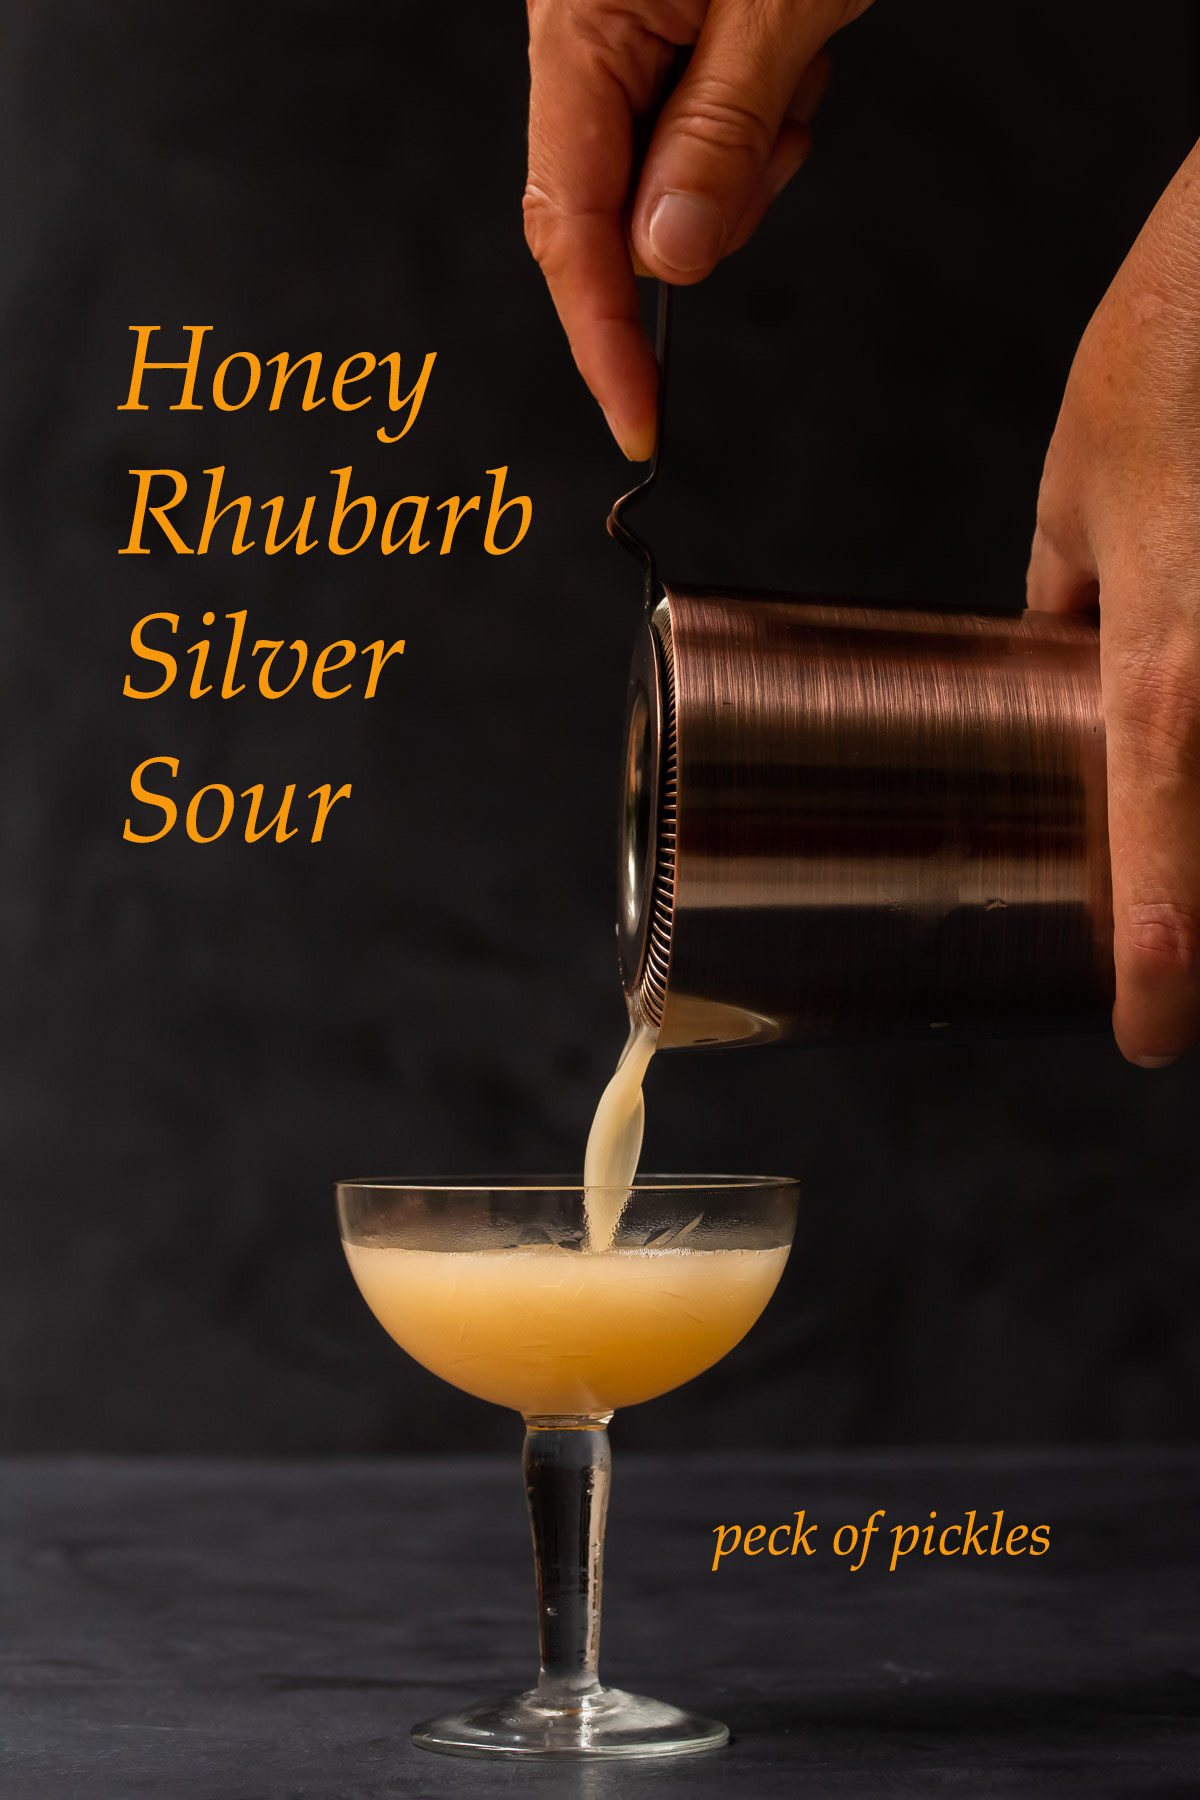 pouring honey rhubarb silver sour glass 2/3 full